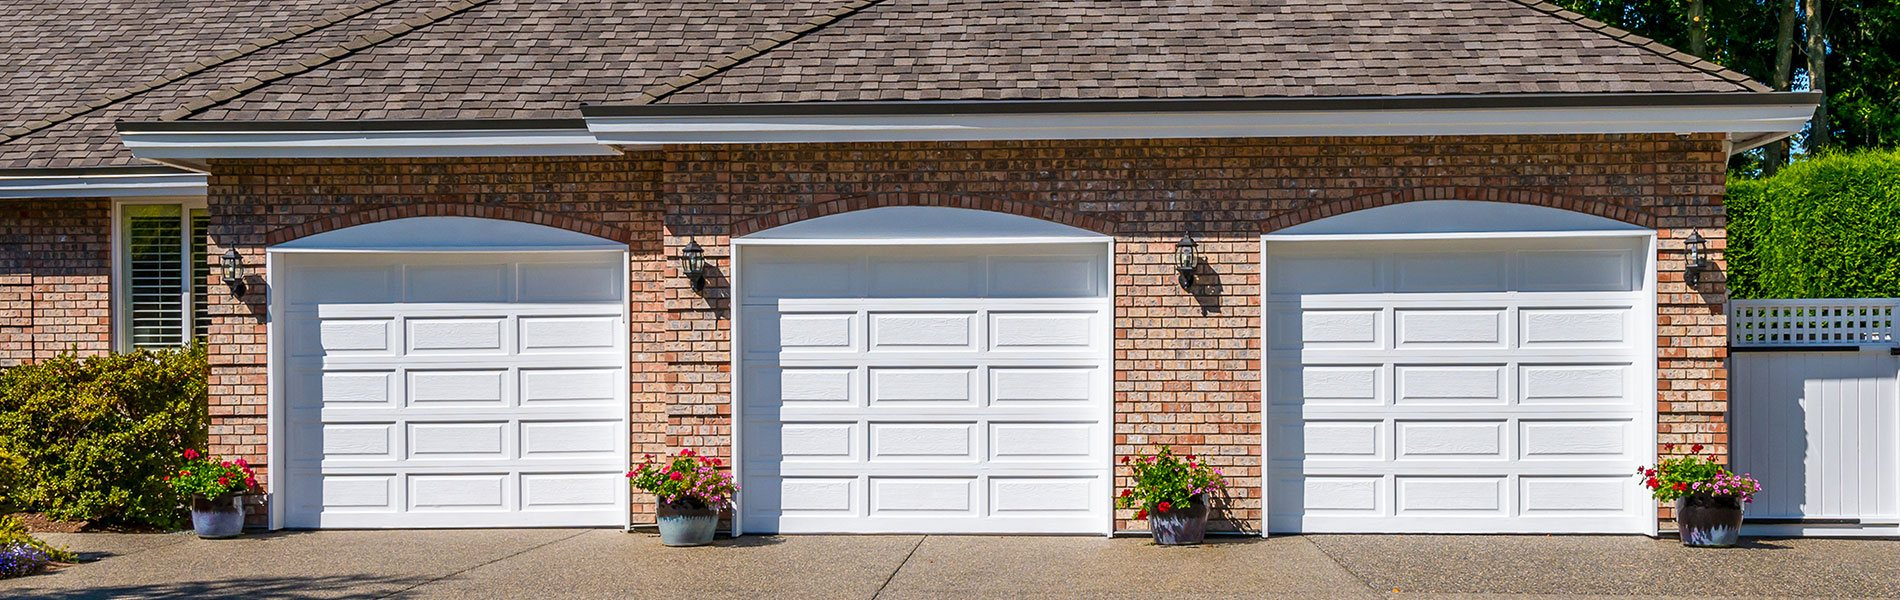 Galaxy Garage Door Service, Riverside, CA 951-703-1705